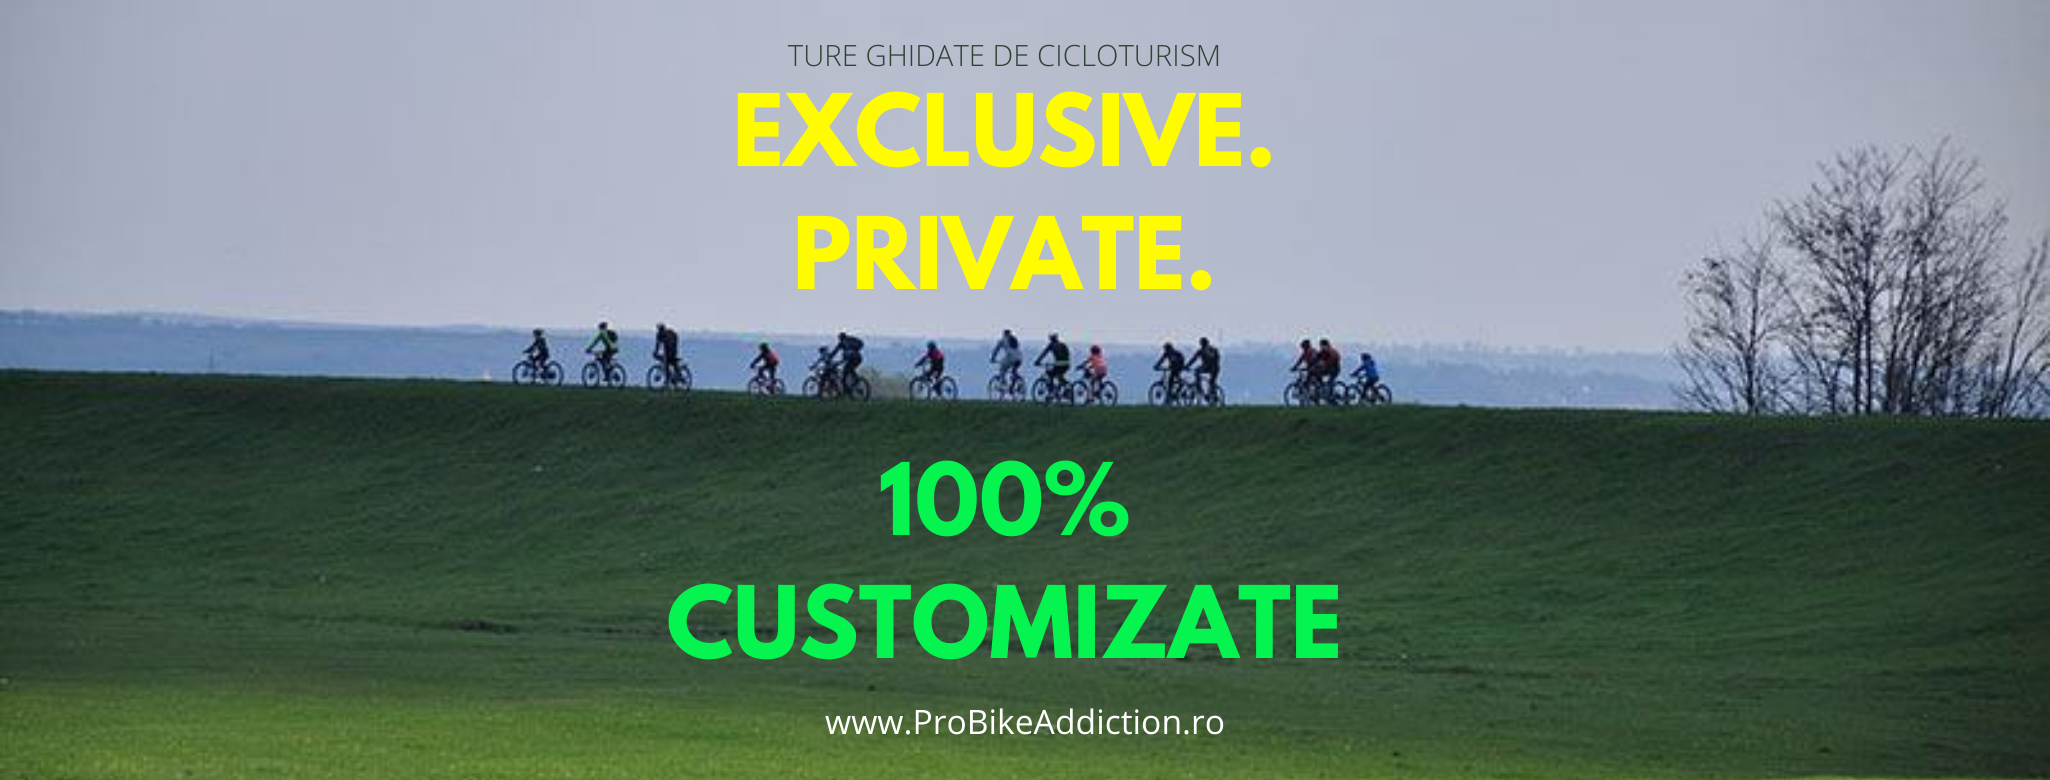 probikeaddiction ture private customizate cicloturism